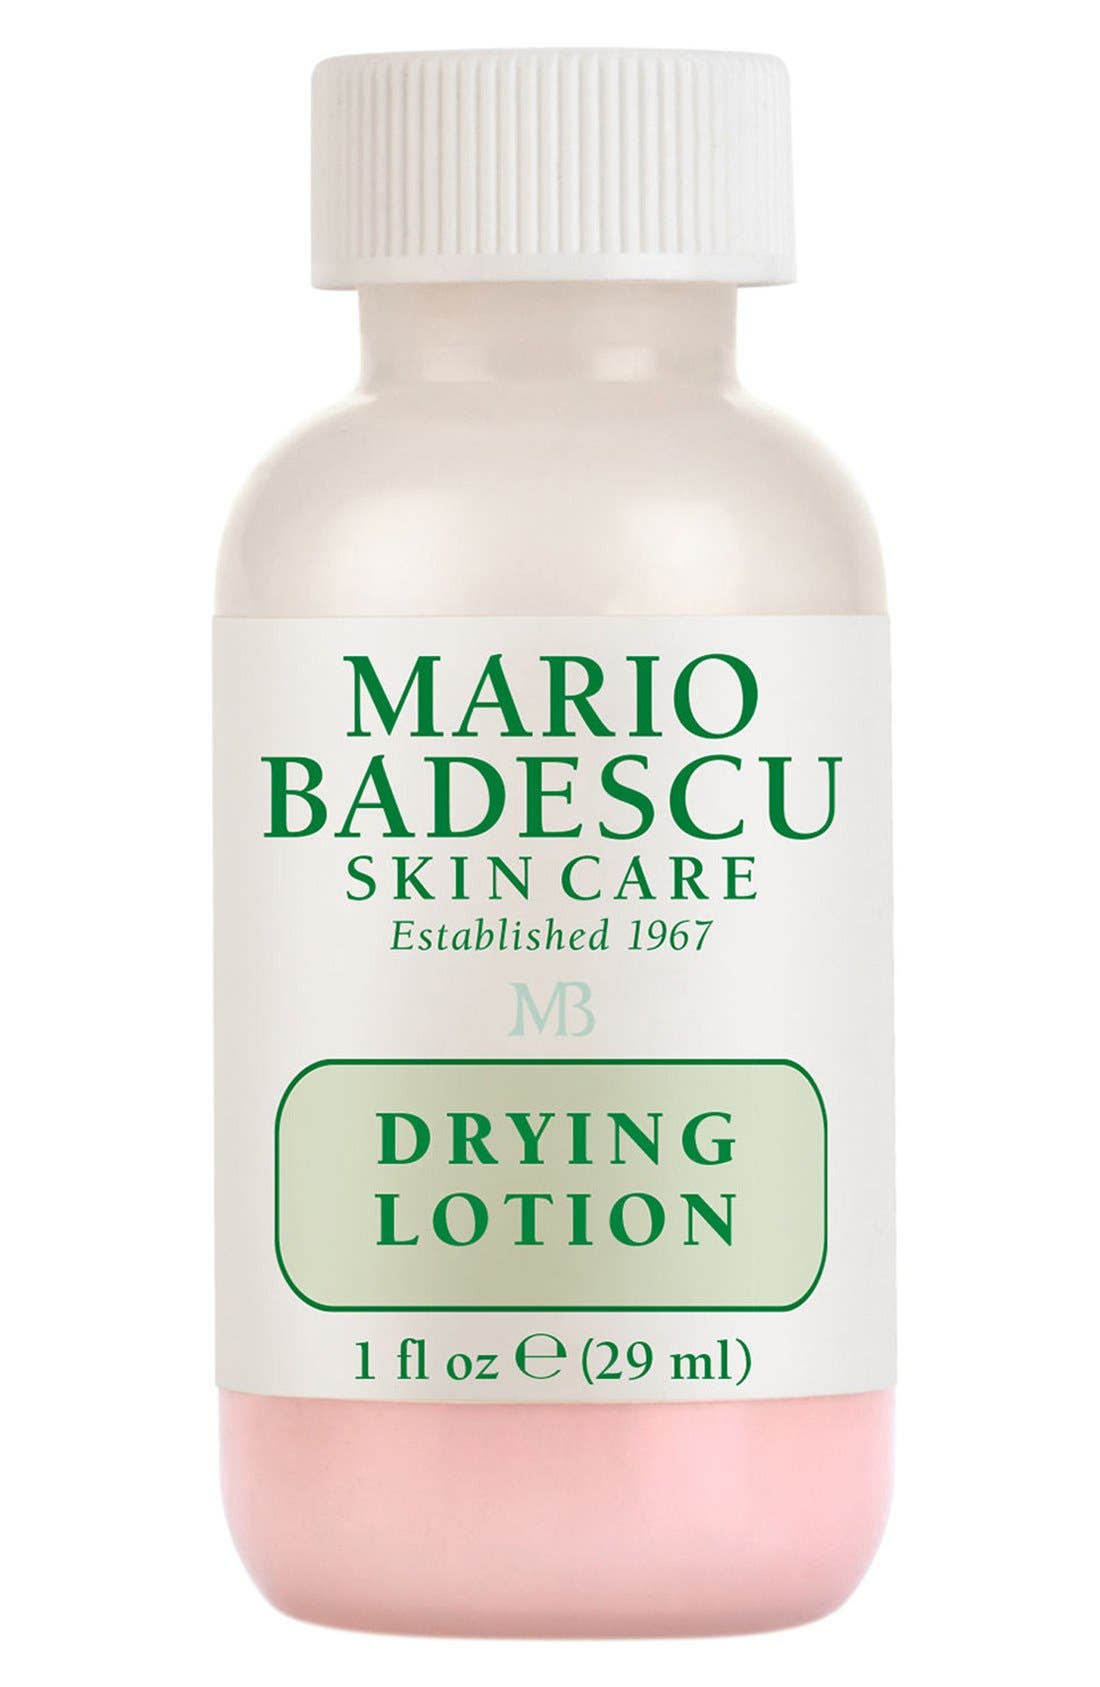 MARIO BADESCU Drying Lotion for Travel, Main, color, NO COLOR